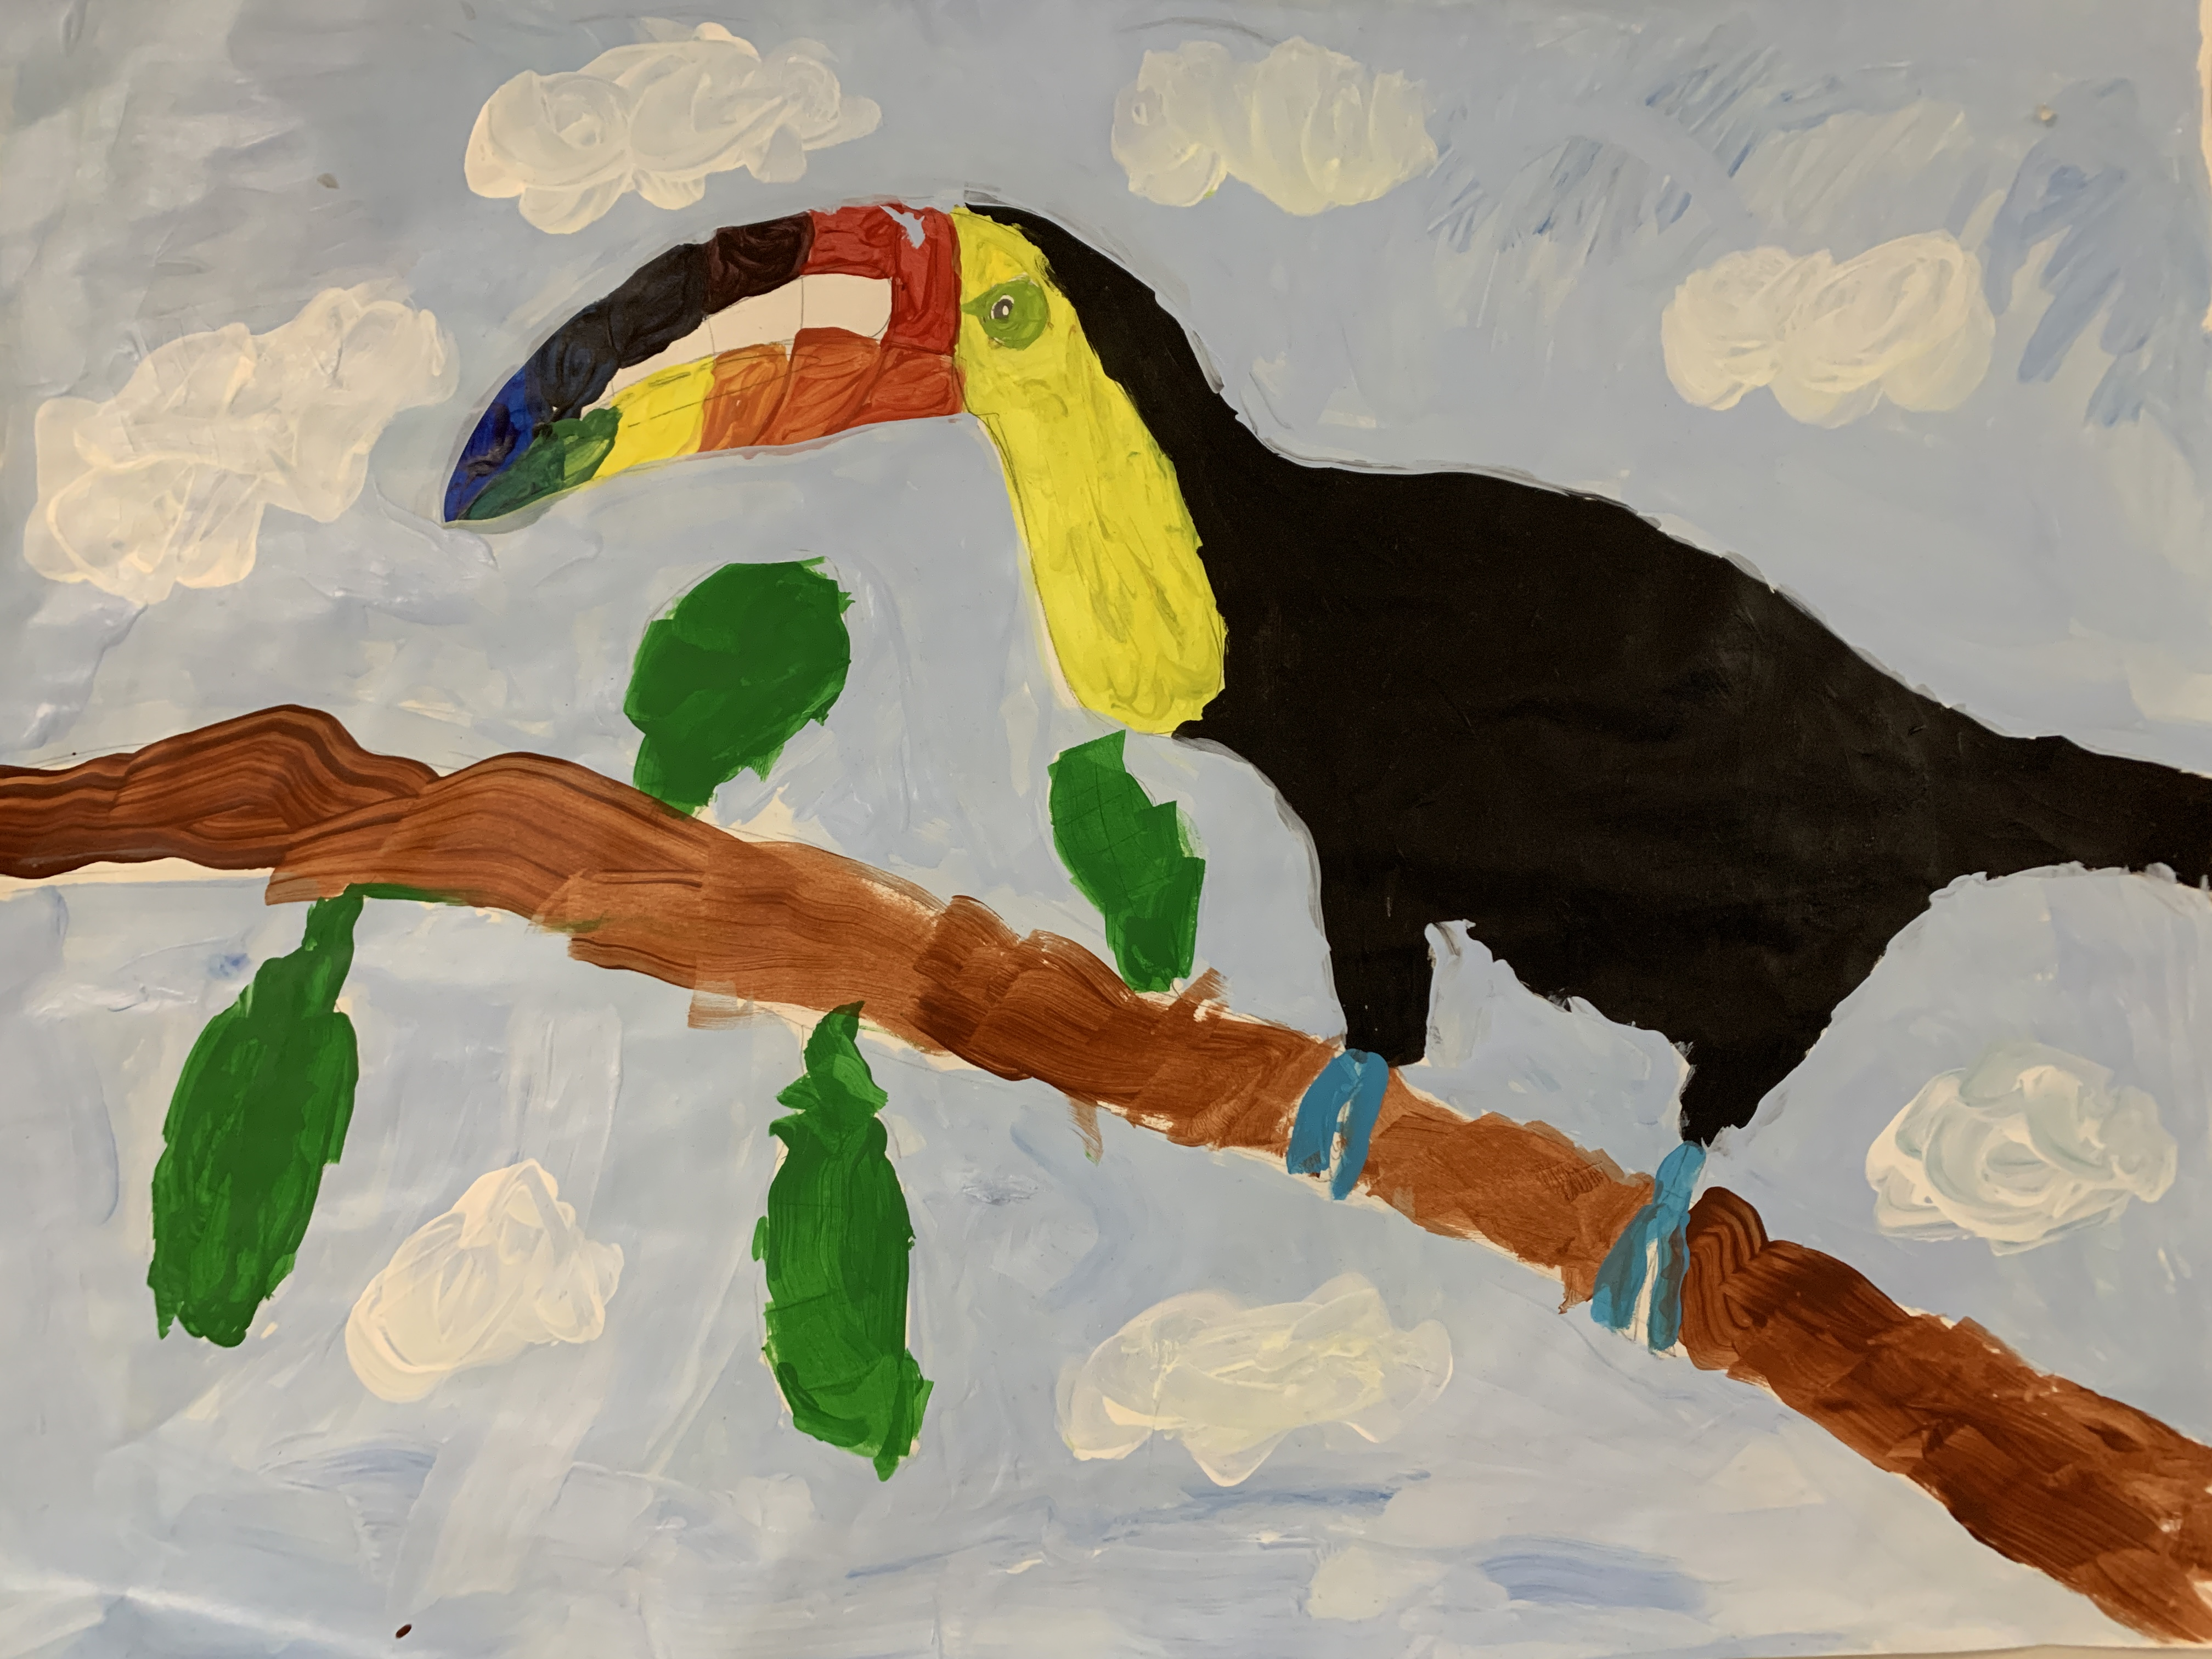 Students color wheel project - a toucan